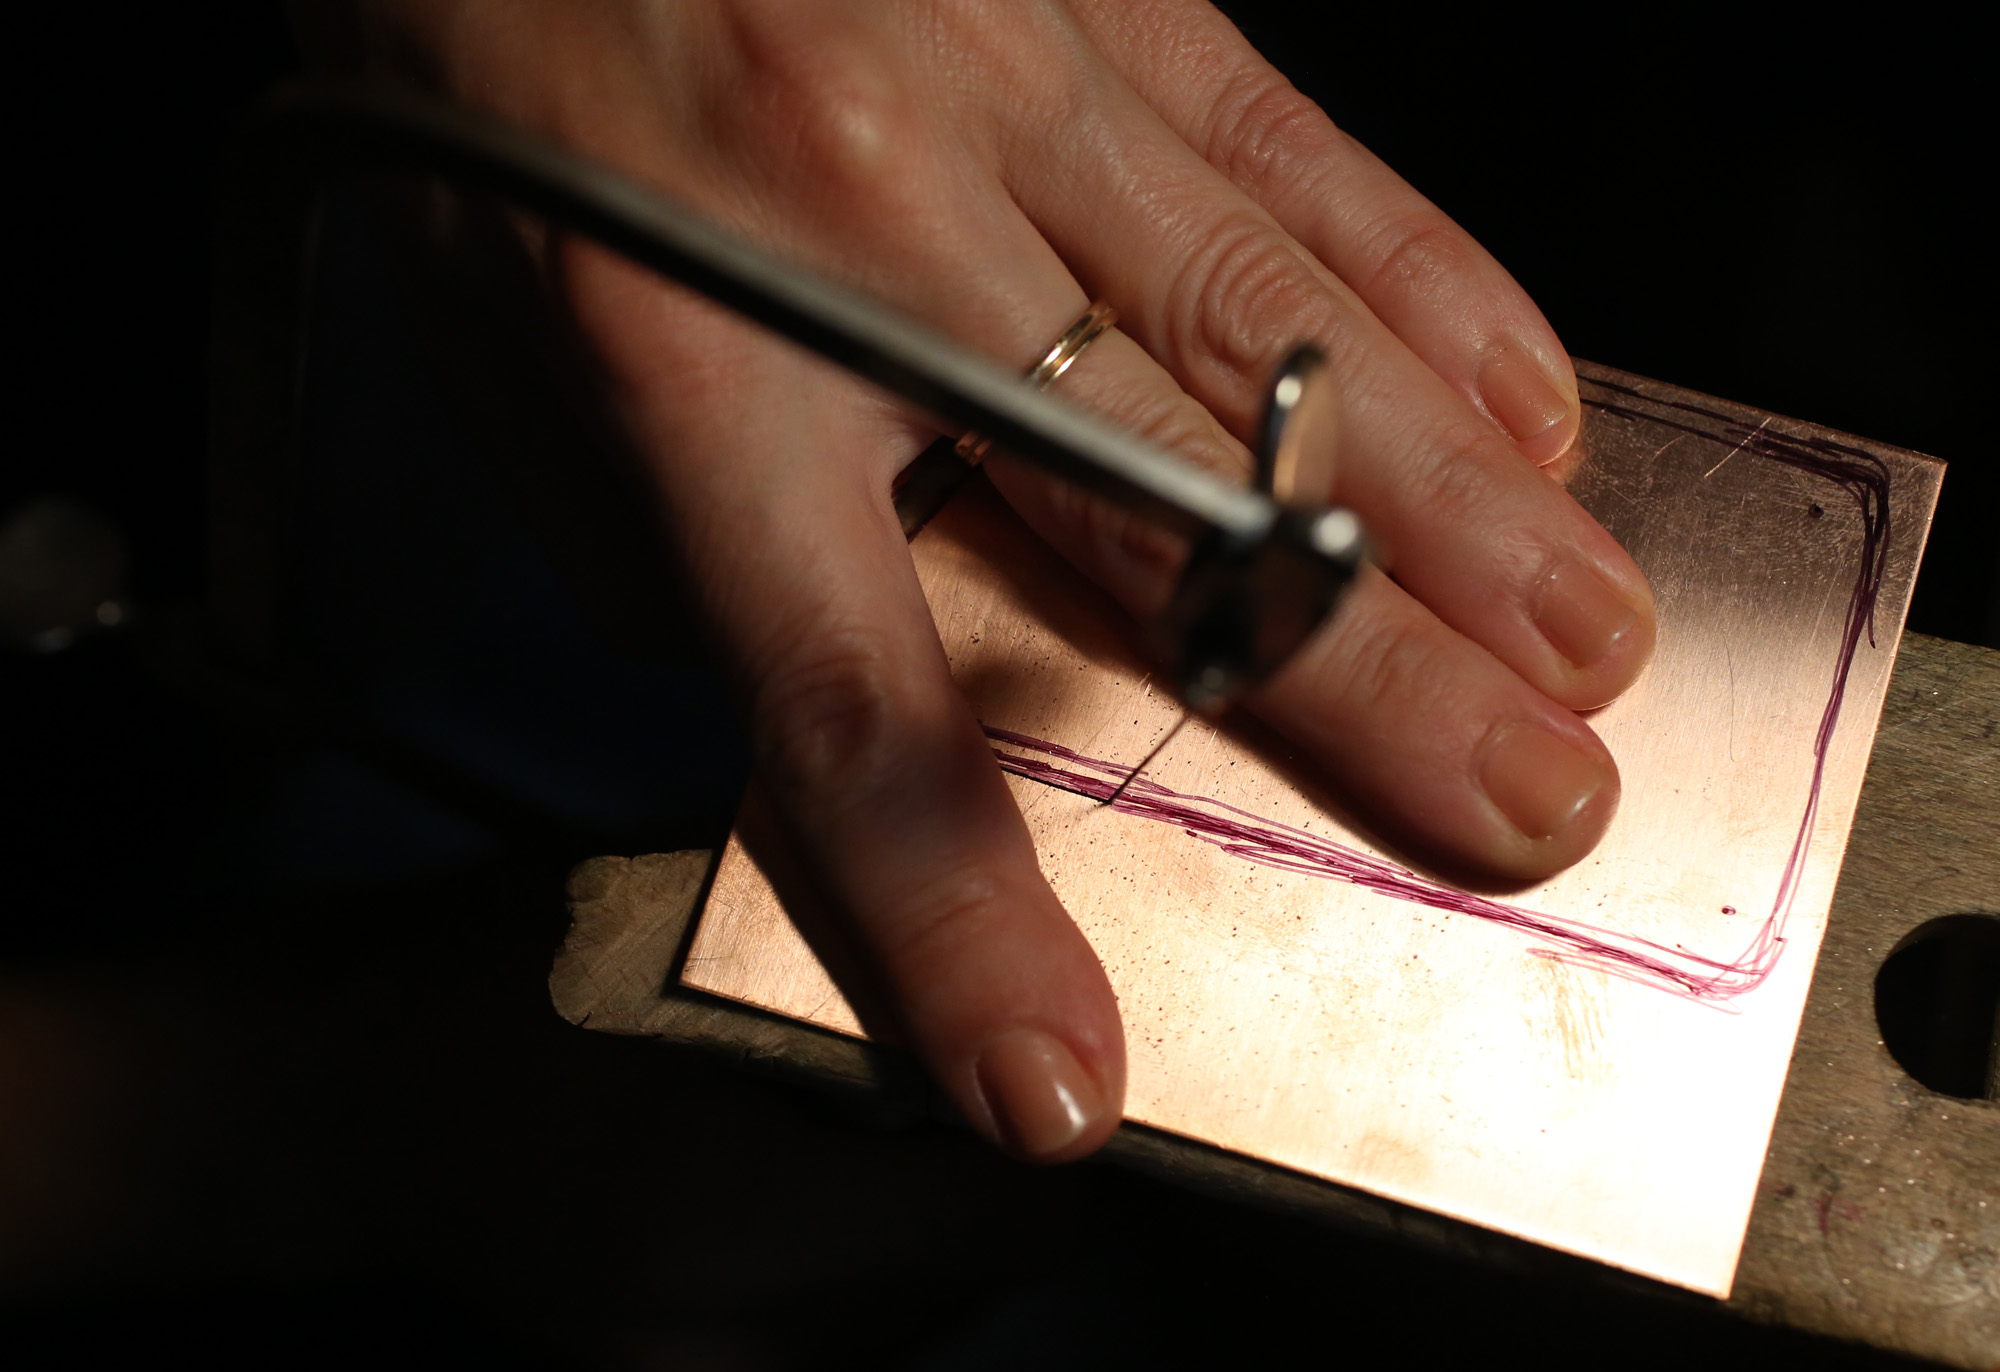 The beginning step of an enameled pendant- piercing copper sheet with a jeweler's saw.